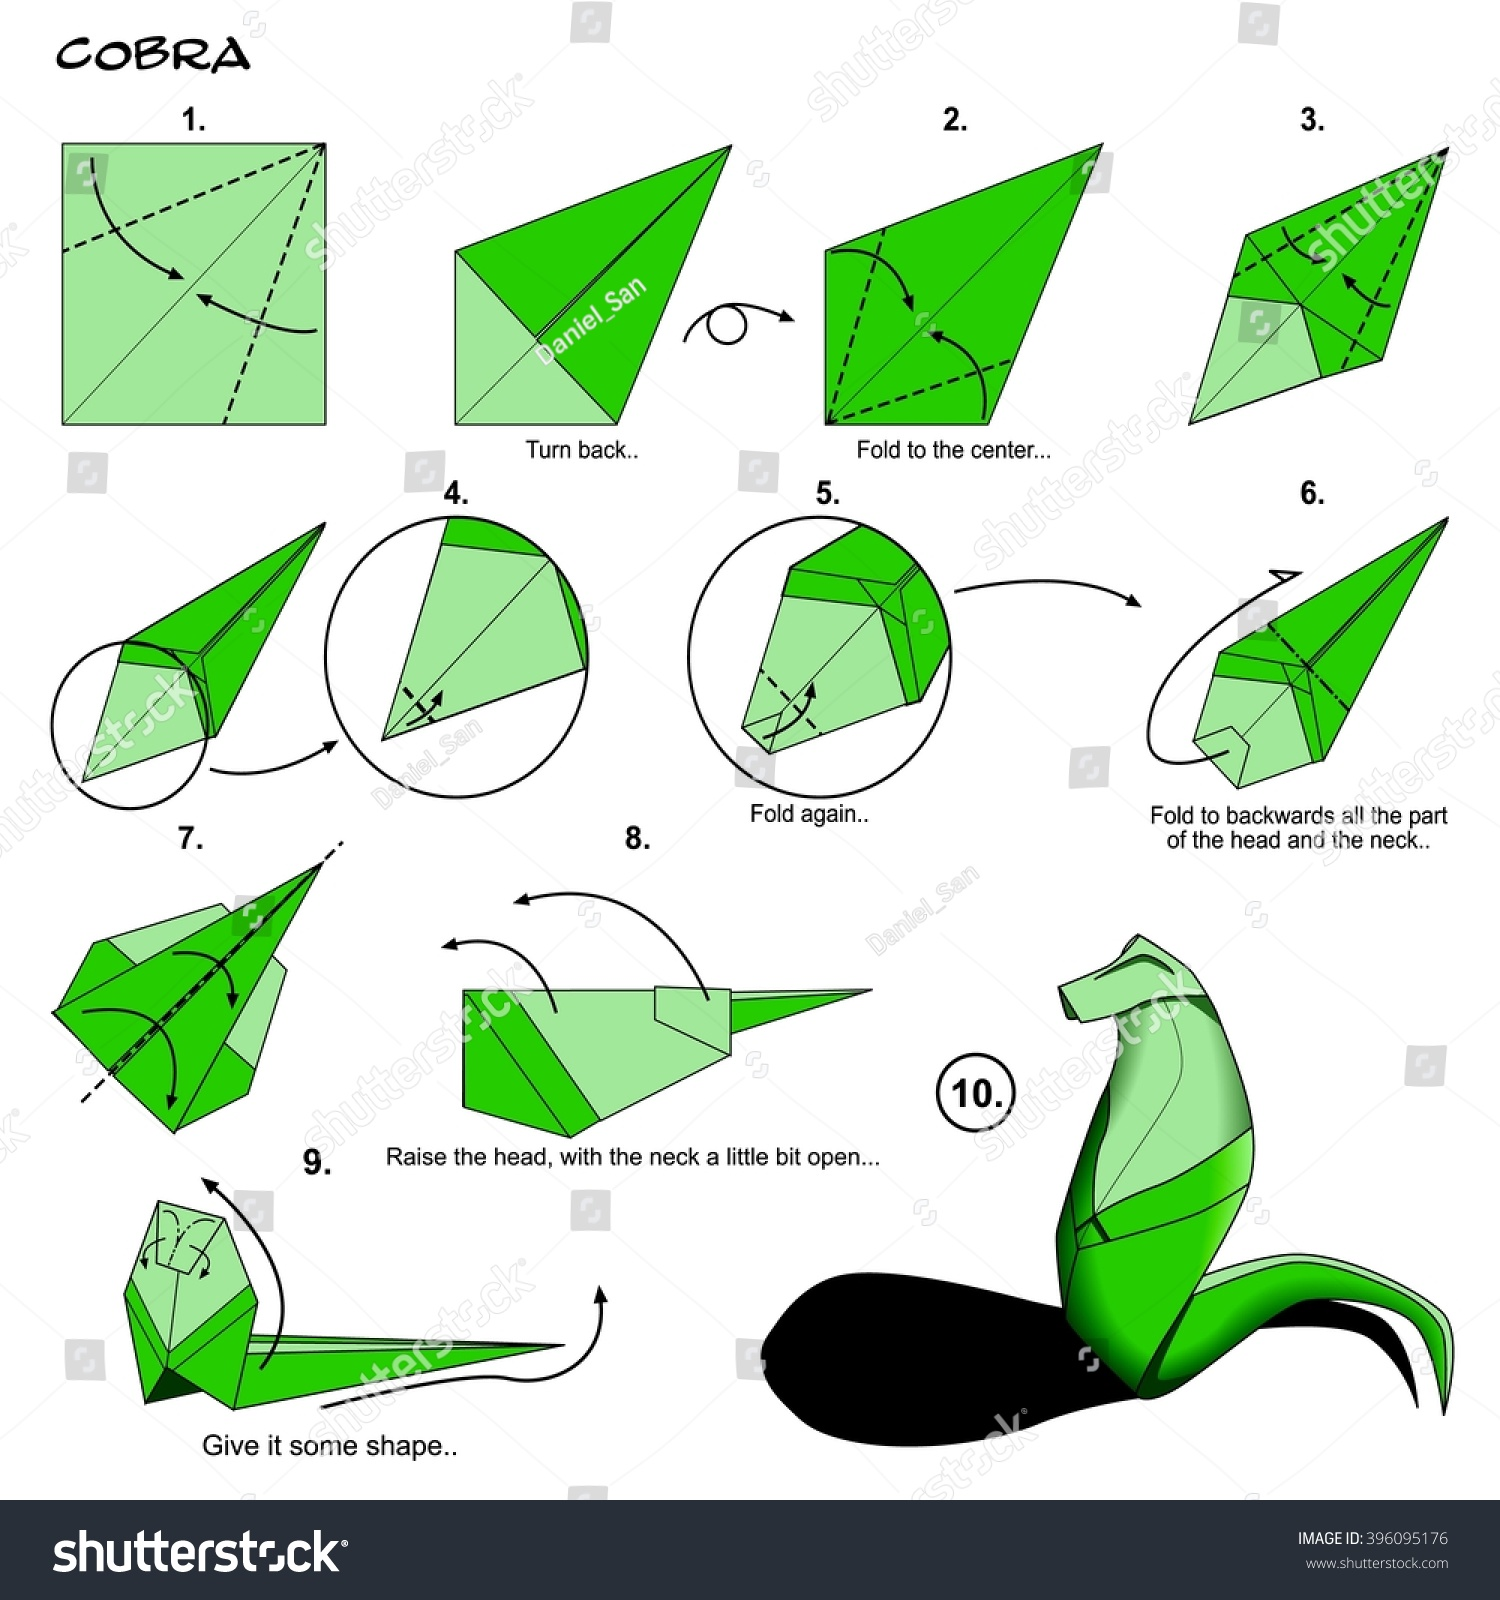 Origami animal snake cobra diagram instructions stock illustration origami animal snake cobra diagram instructions step by step paper folding art jeuxipadfo Images